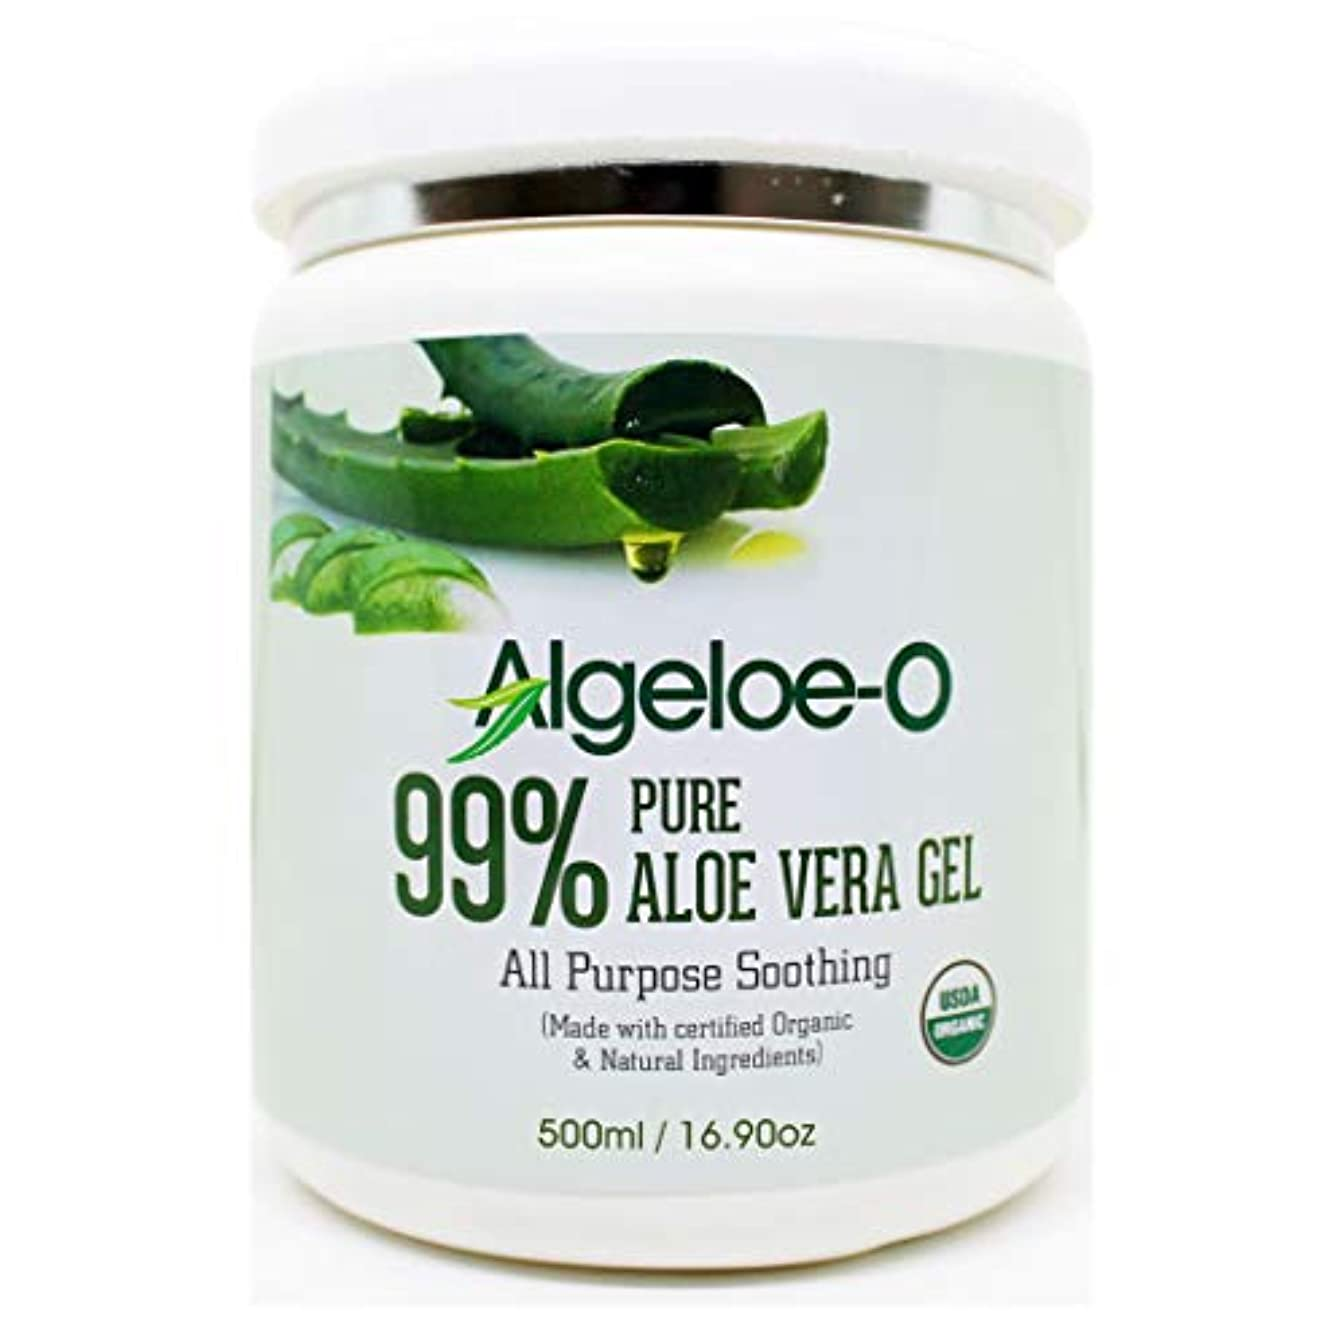 床親密なブレースAlgeloe-O  Organic Aloe Vera Gel 99% Pure Natural made with USDA Certified Aloe Vera Powder Paraben, sulfate free...